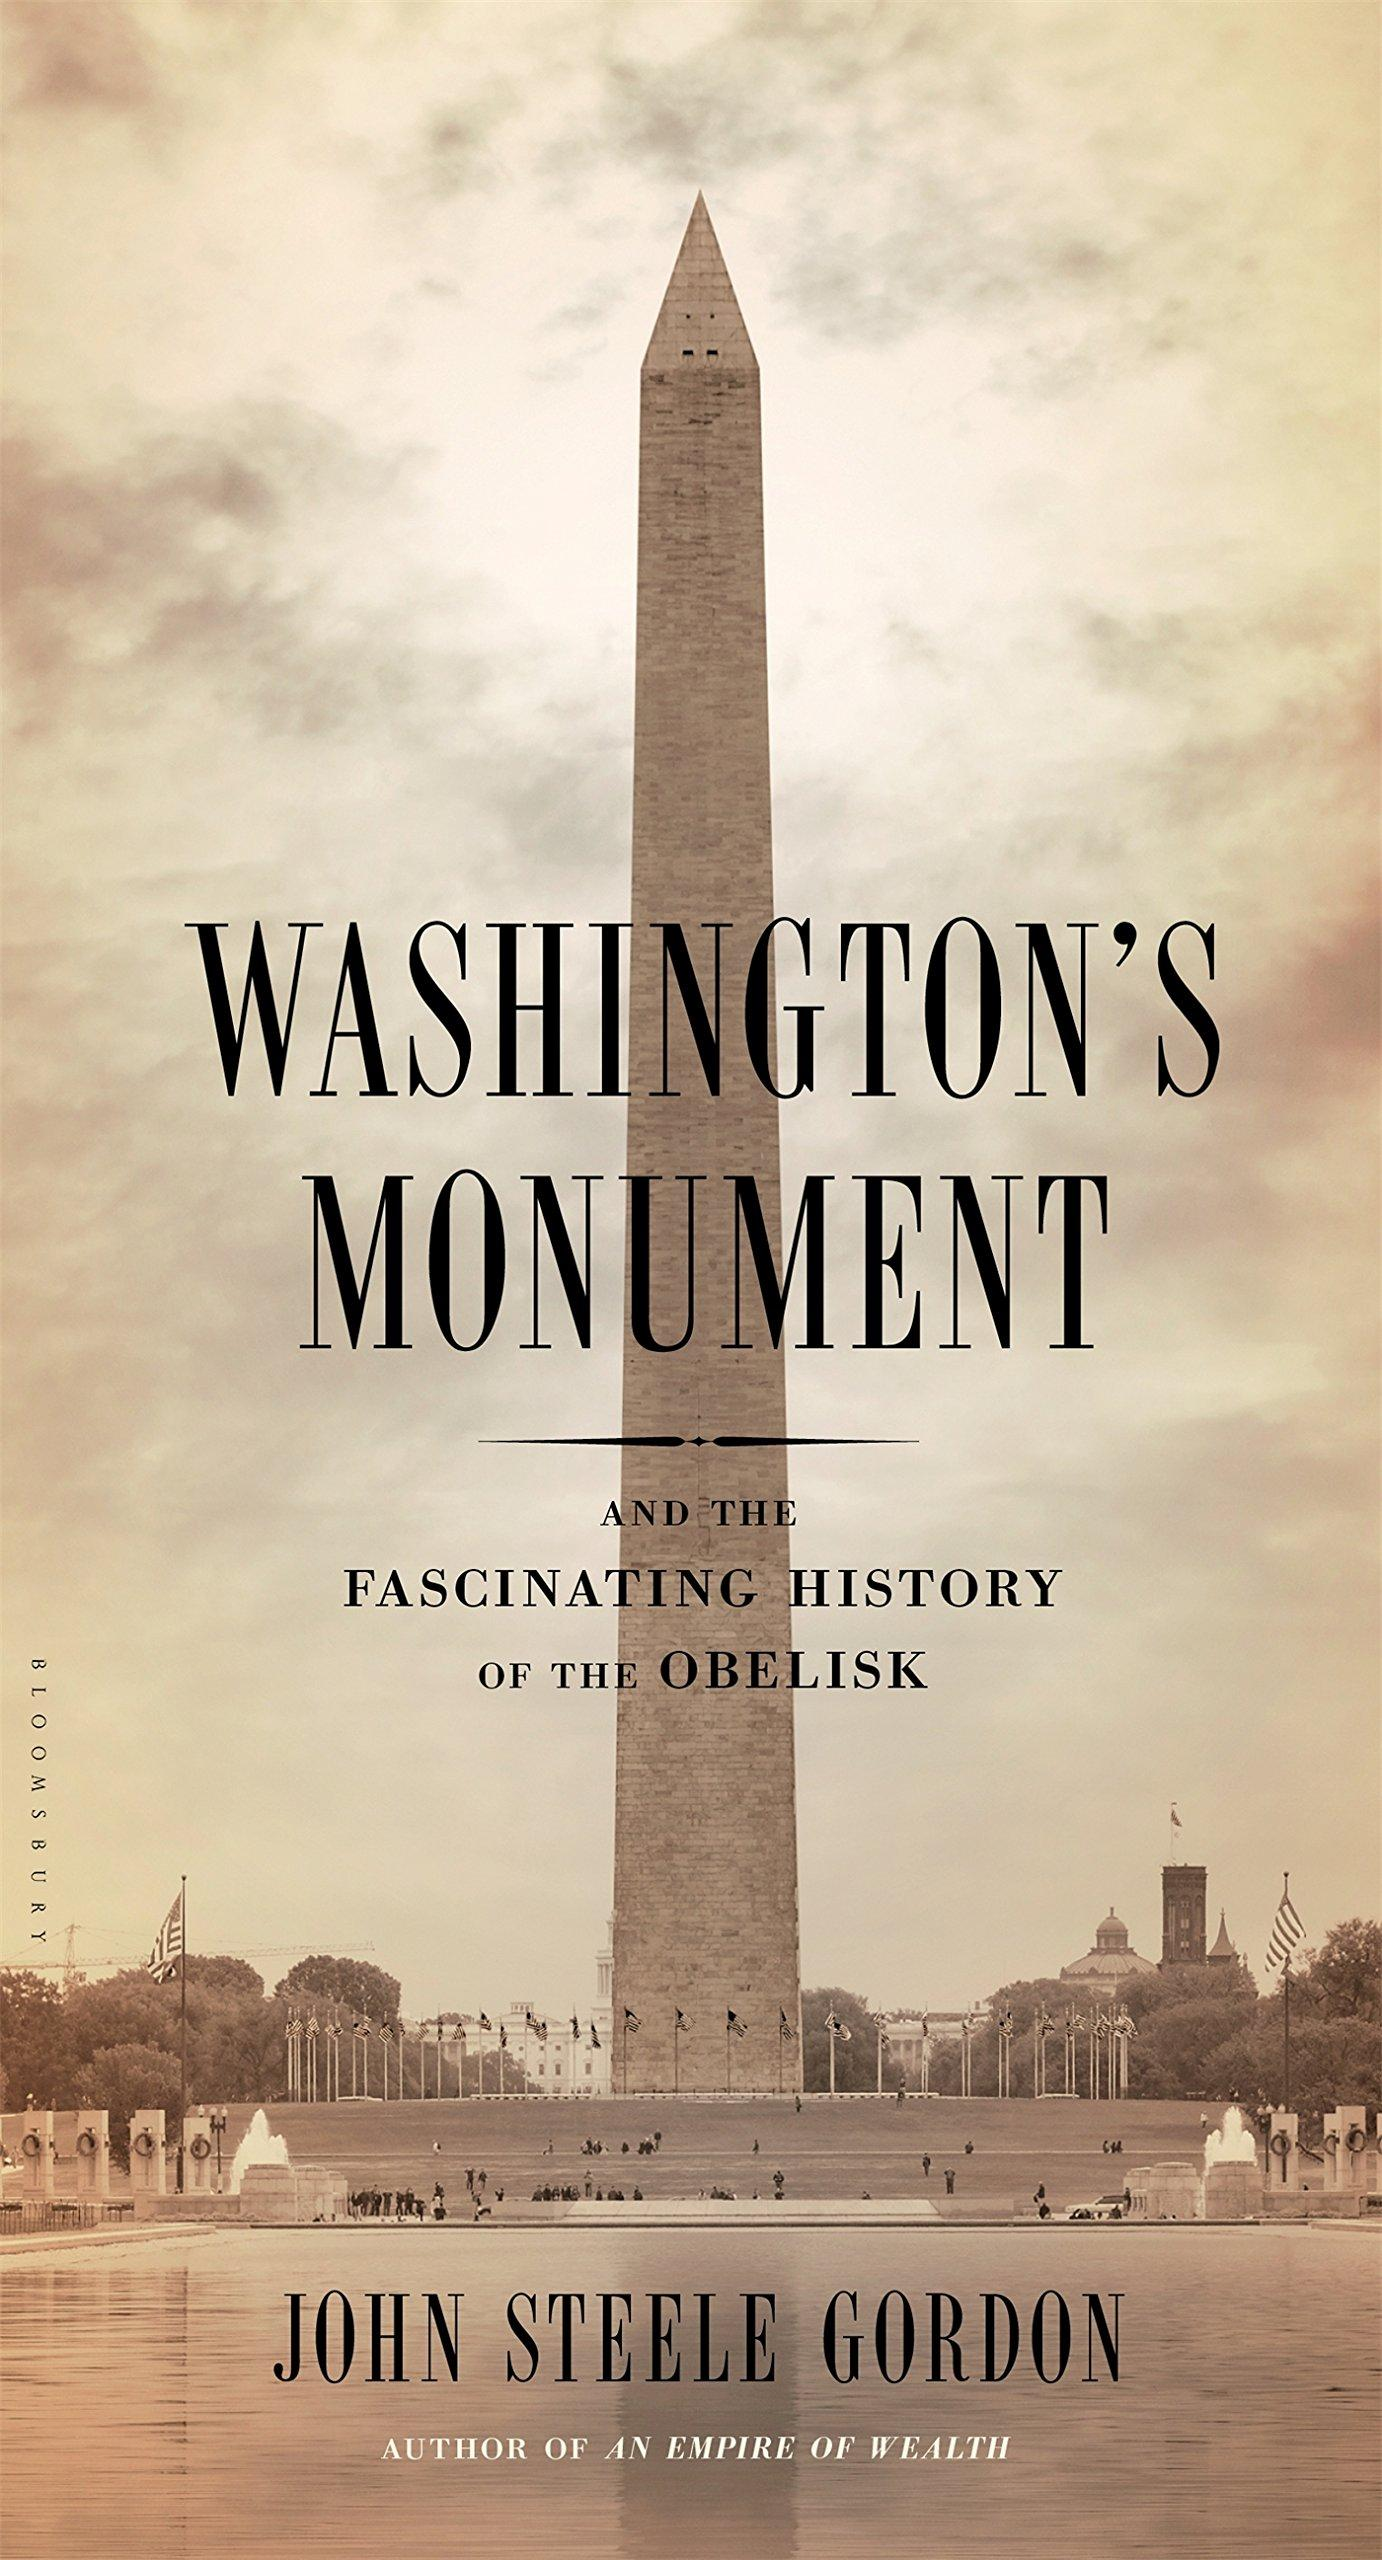 a history of the washington monument A little history the washington monument and laus deo-ii there are many, many monuments in our capitol that remind us that our founders were christians, that only a fraction were not, but that all honored god.